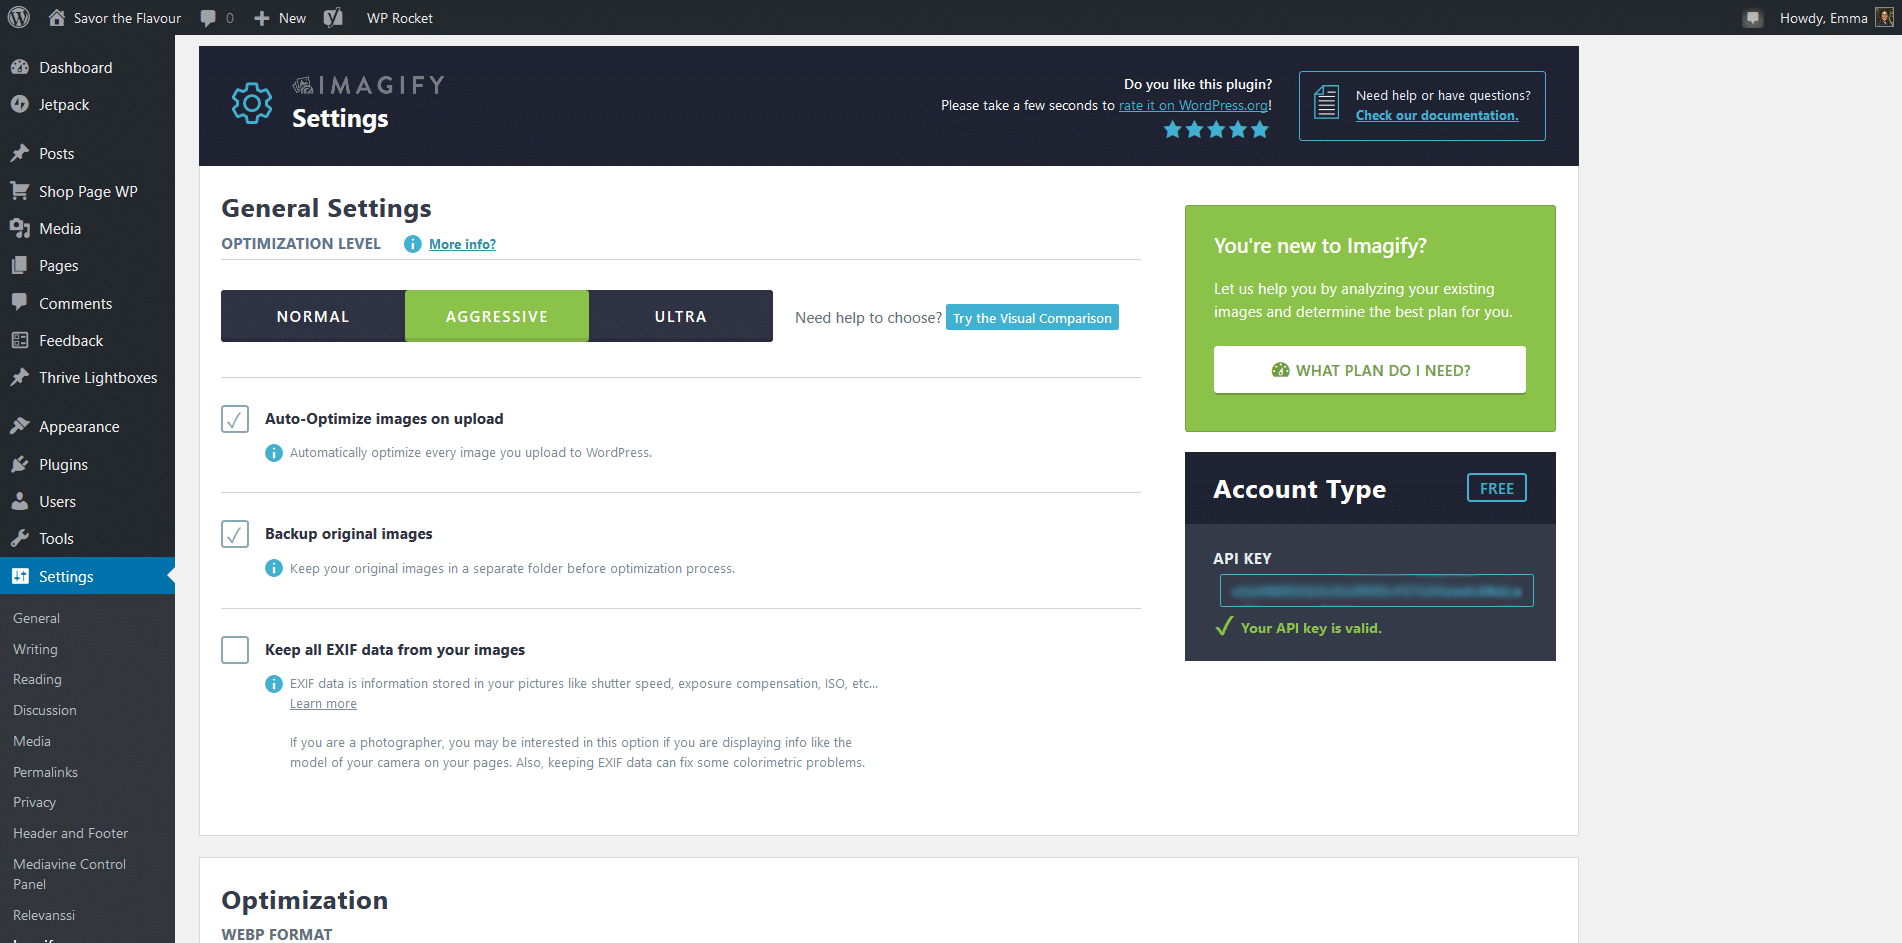 screenshot of Imagify settings in the WordPress dashboard